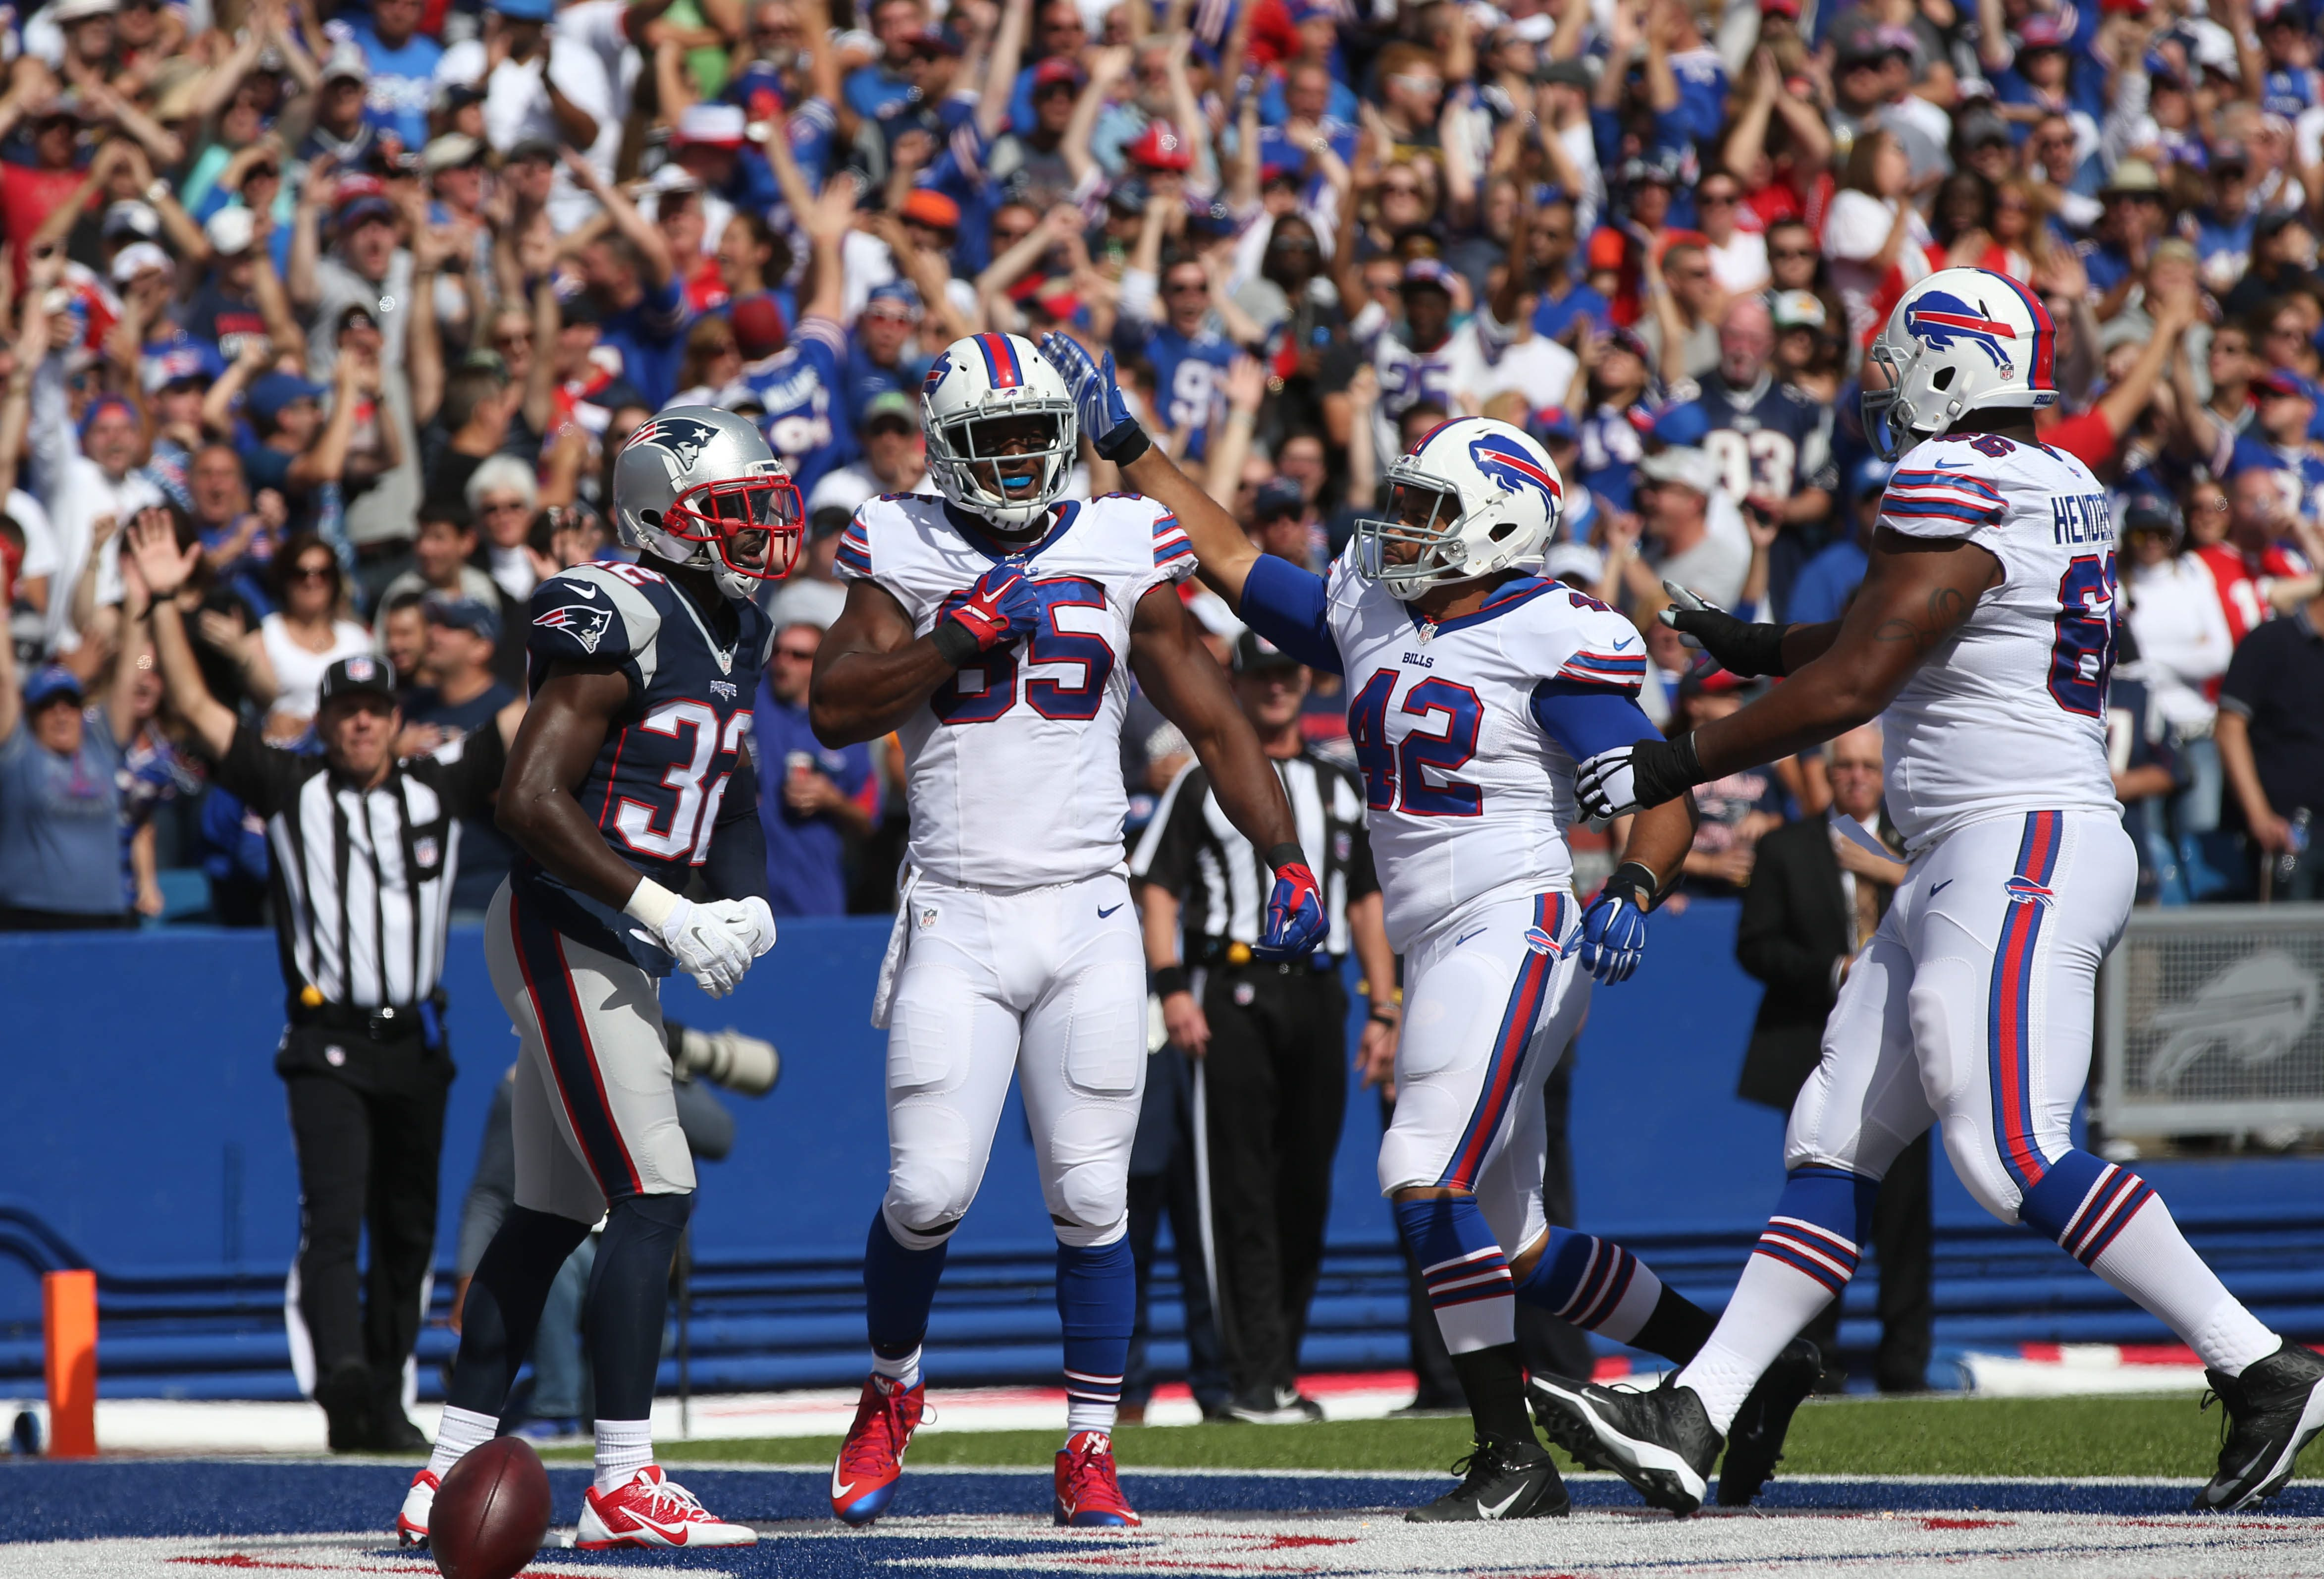 If Buffalo Bills tight end Charles Clay (85) celebrates another touchdown Sunday, he'll do so under mostly sunny skies in Orchard Park. (James P. McCoy/ Buffalo News)